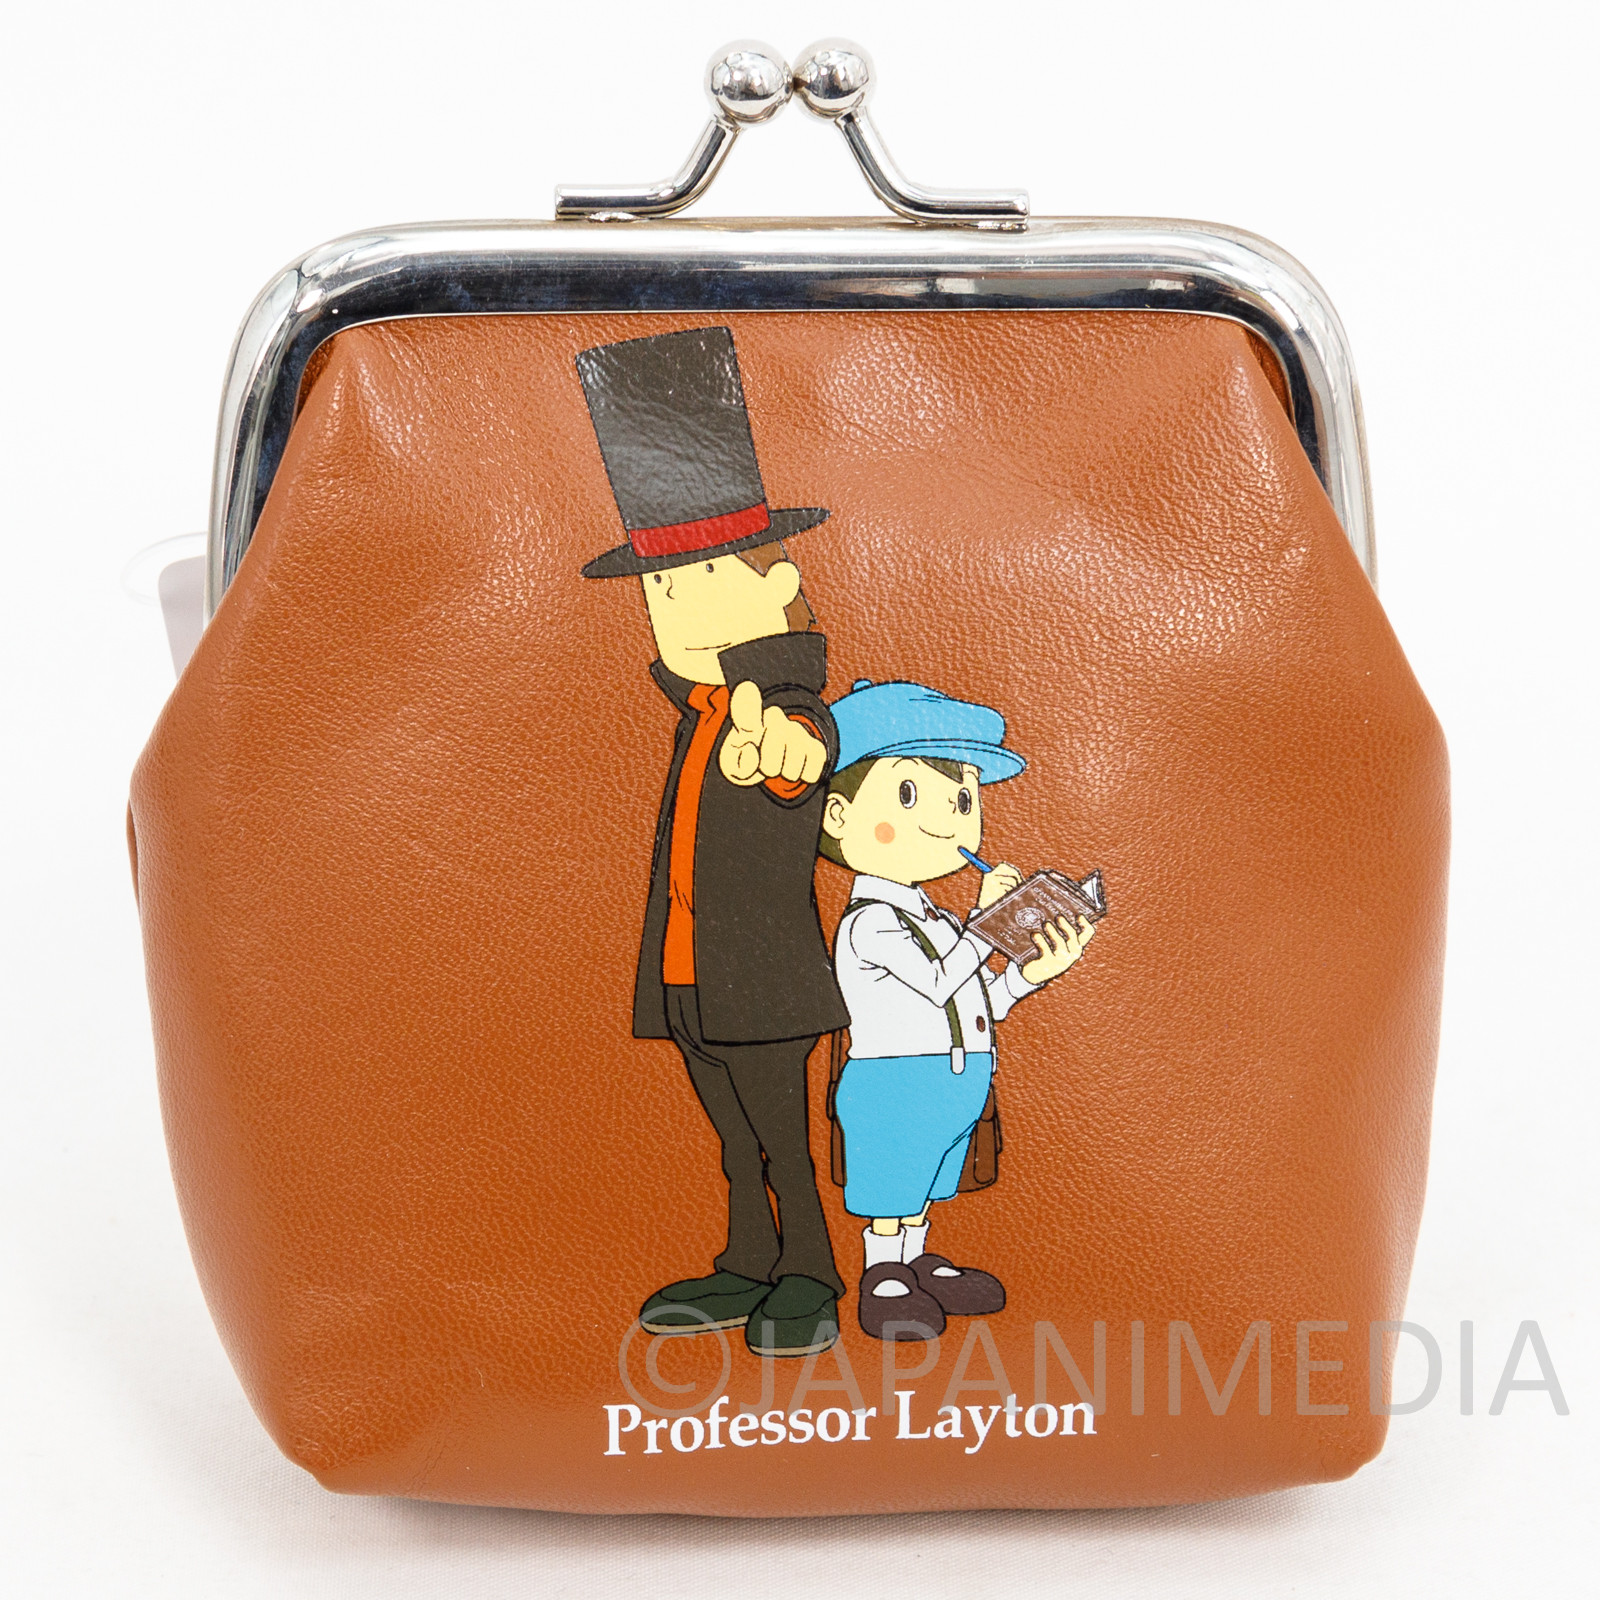 Professor Layton Coin Case Purse Nintendo DS GAME JAPAN